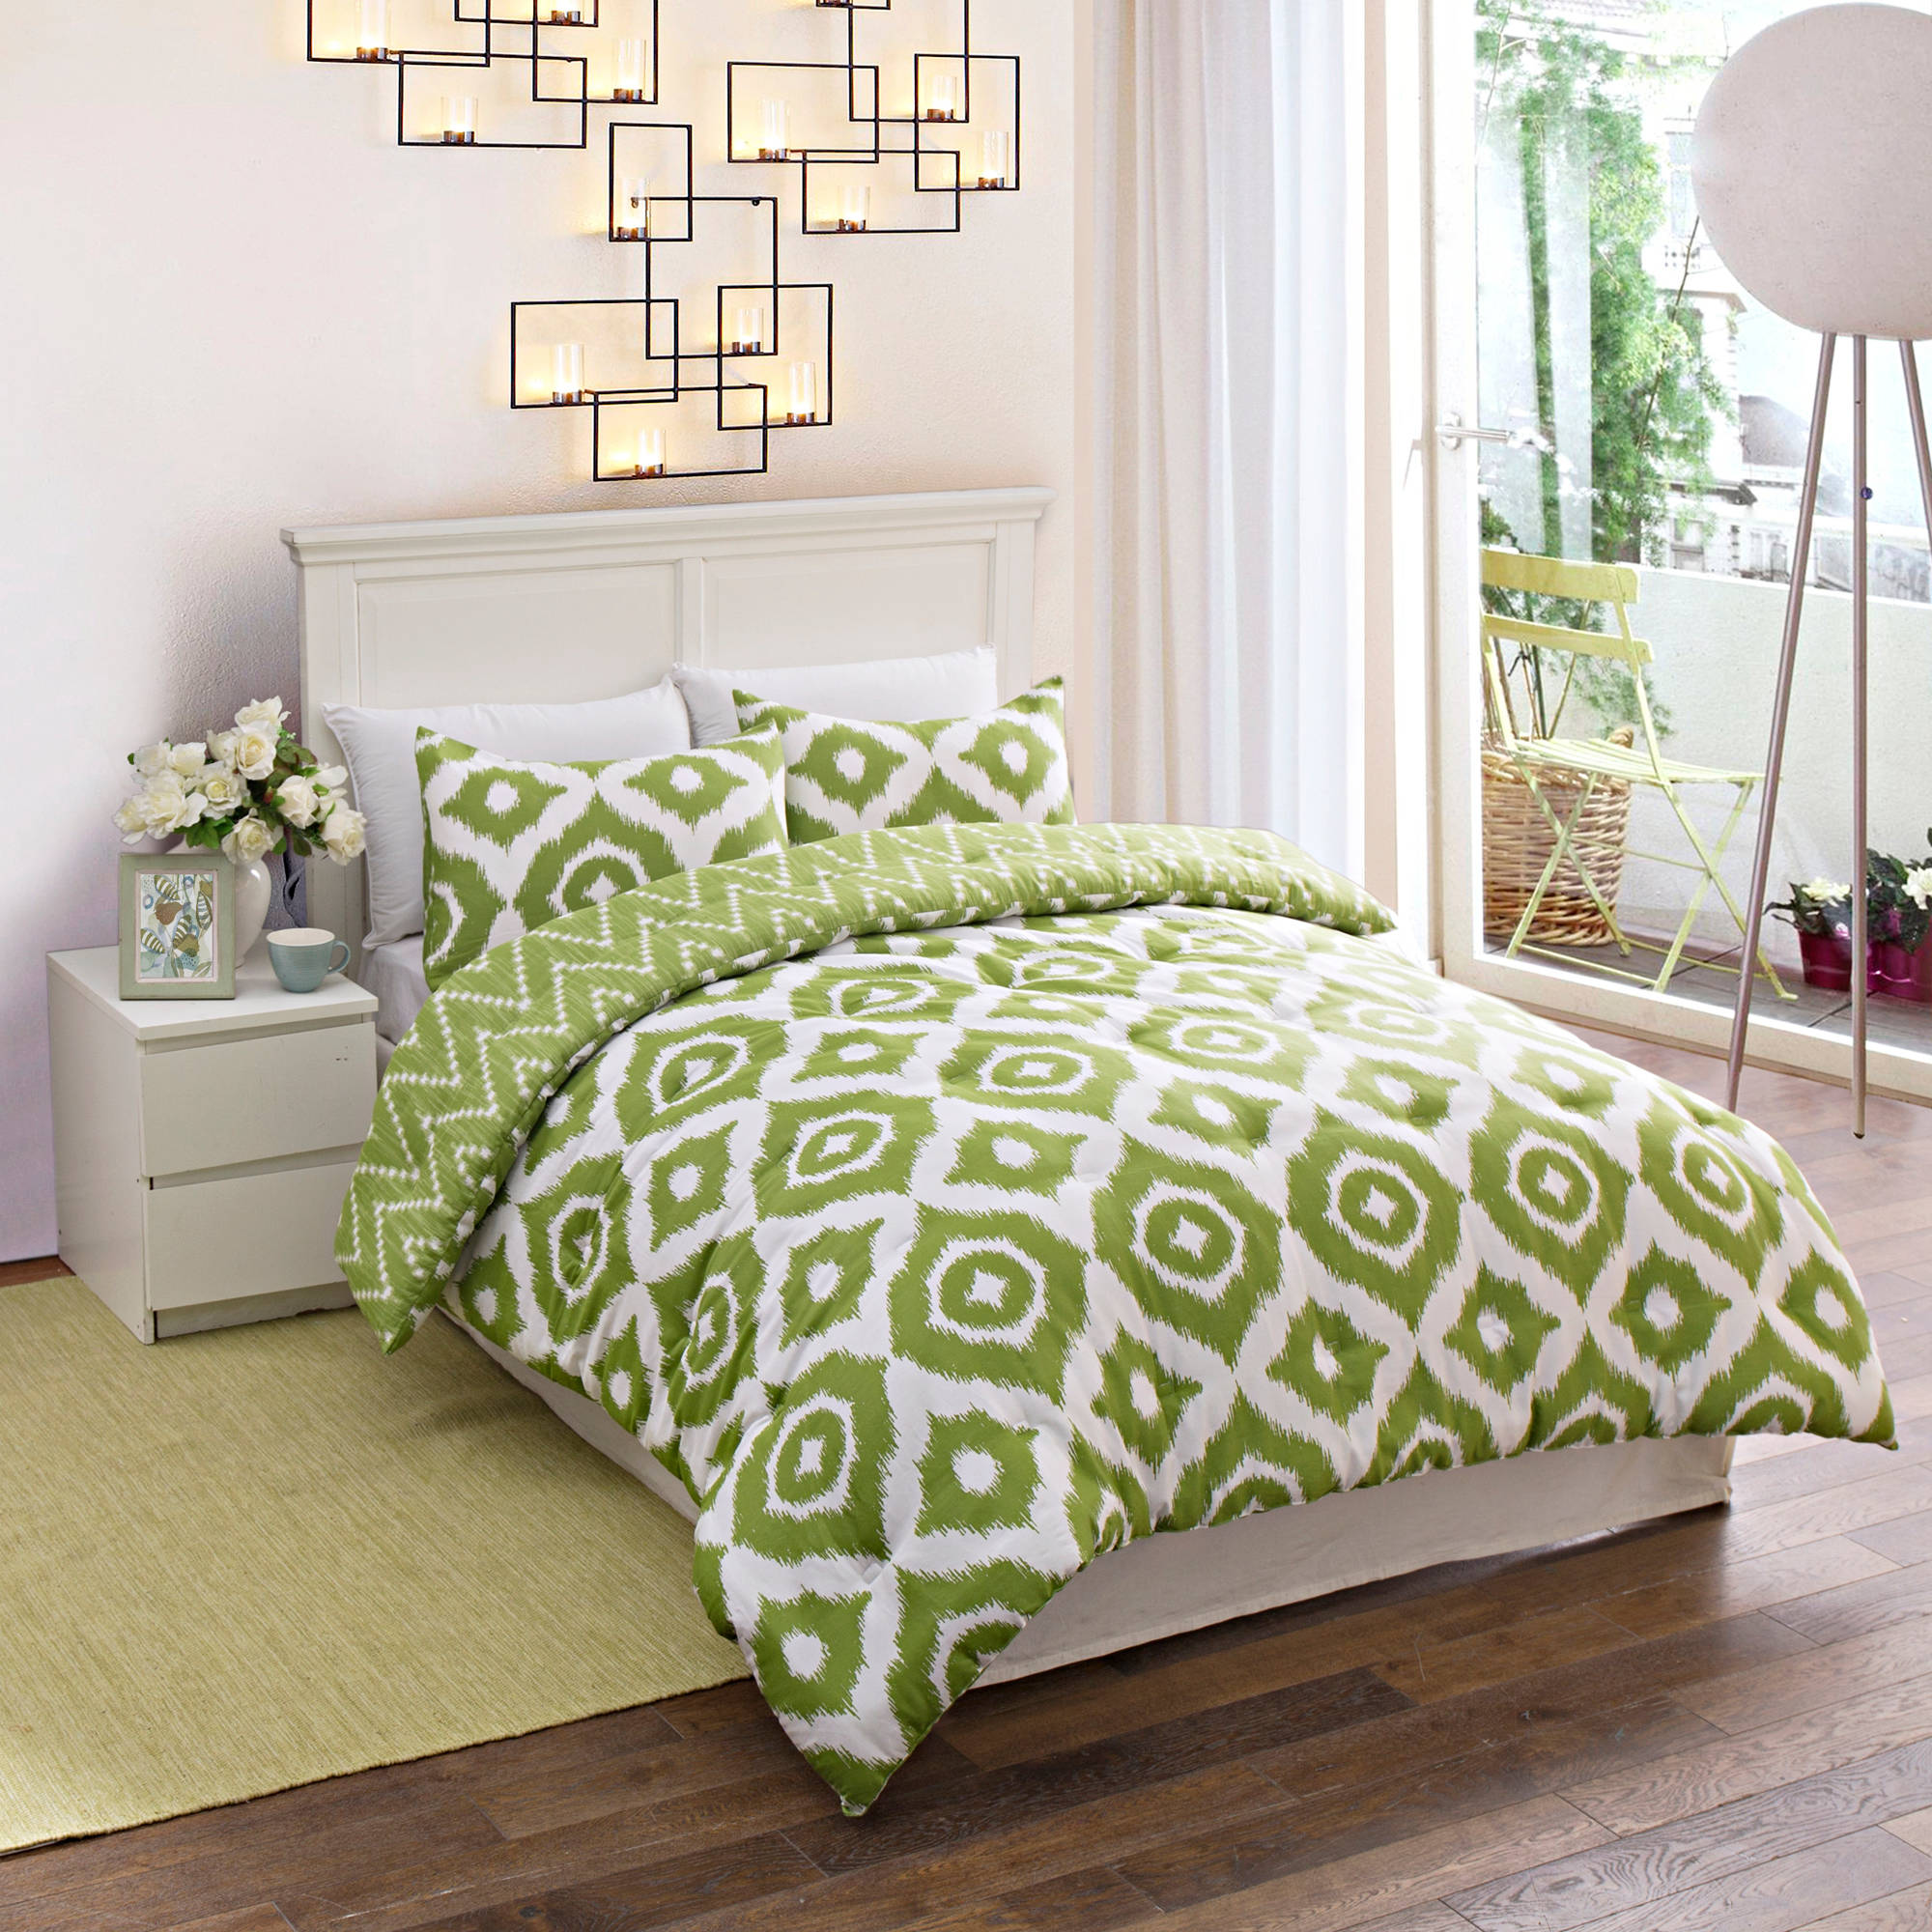 Geo Medallion Bedding Comforter Set